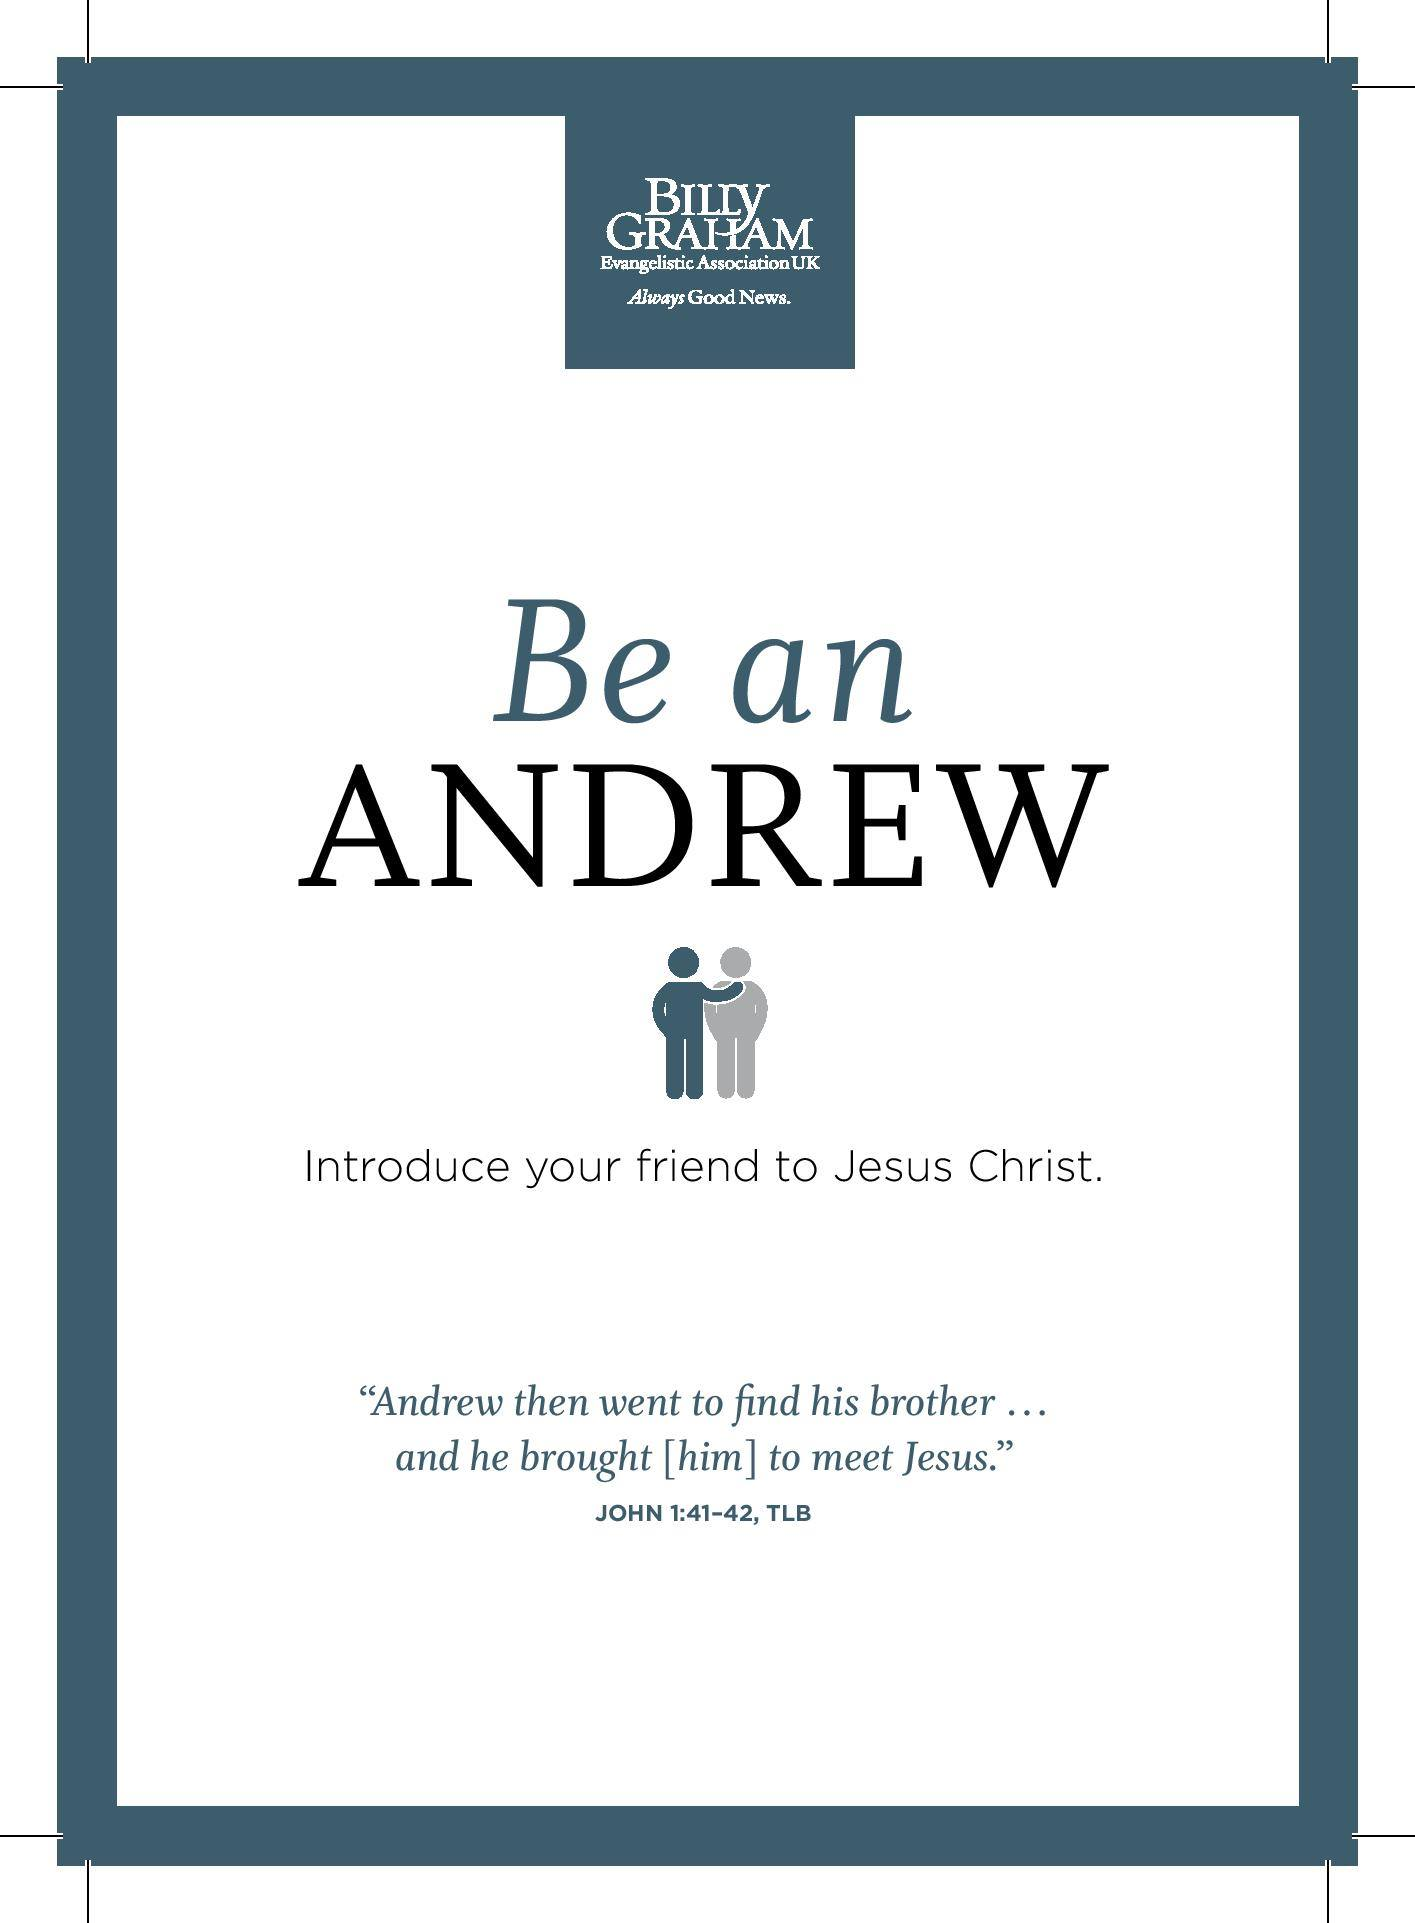 Blackpool Festival of Hope with Franklin Graham:  Be an Andrew!